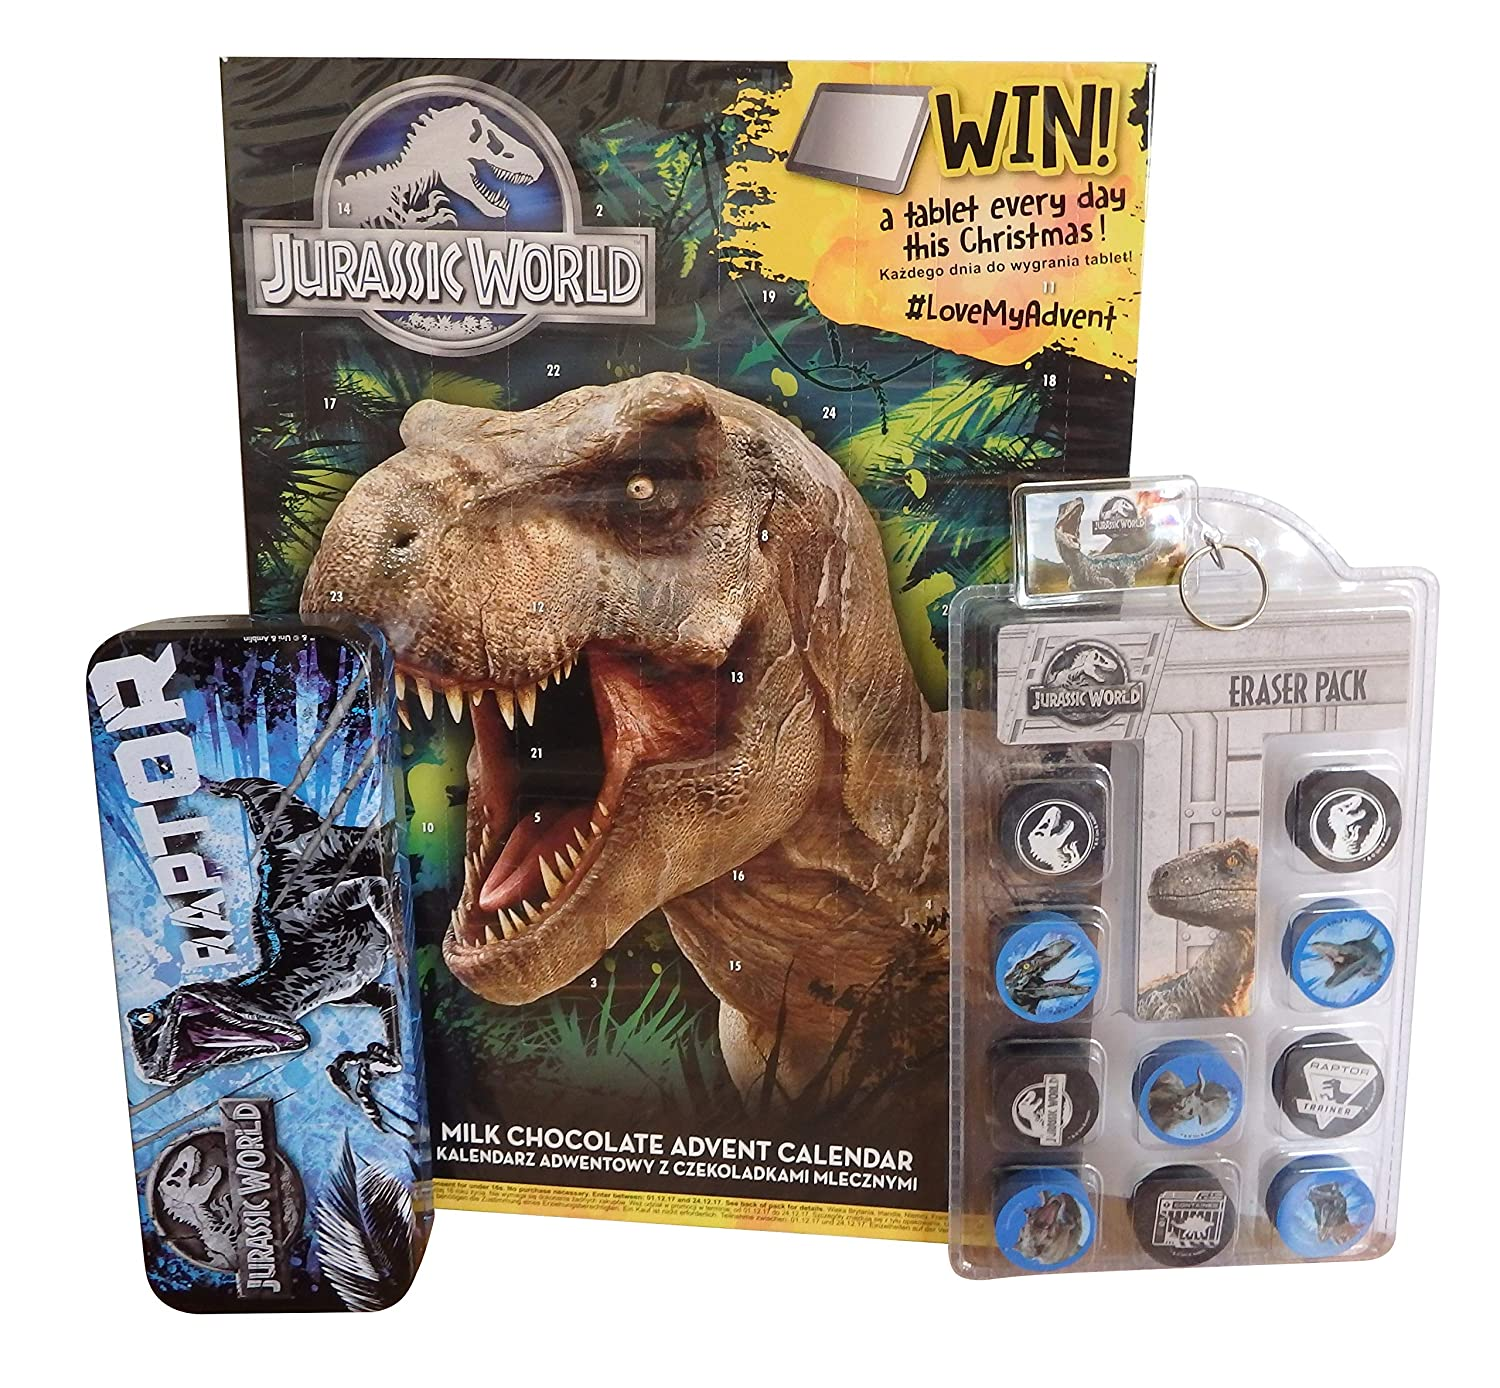 Jurassic World Chocolate Advent Calendar Set 2018 - Pencil Case, Eraser Pack, Keyring , Christmas Stocking Filler Set for Boys And Girls. Official items bundle. BonBon Buddies